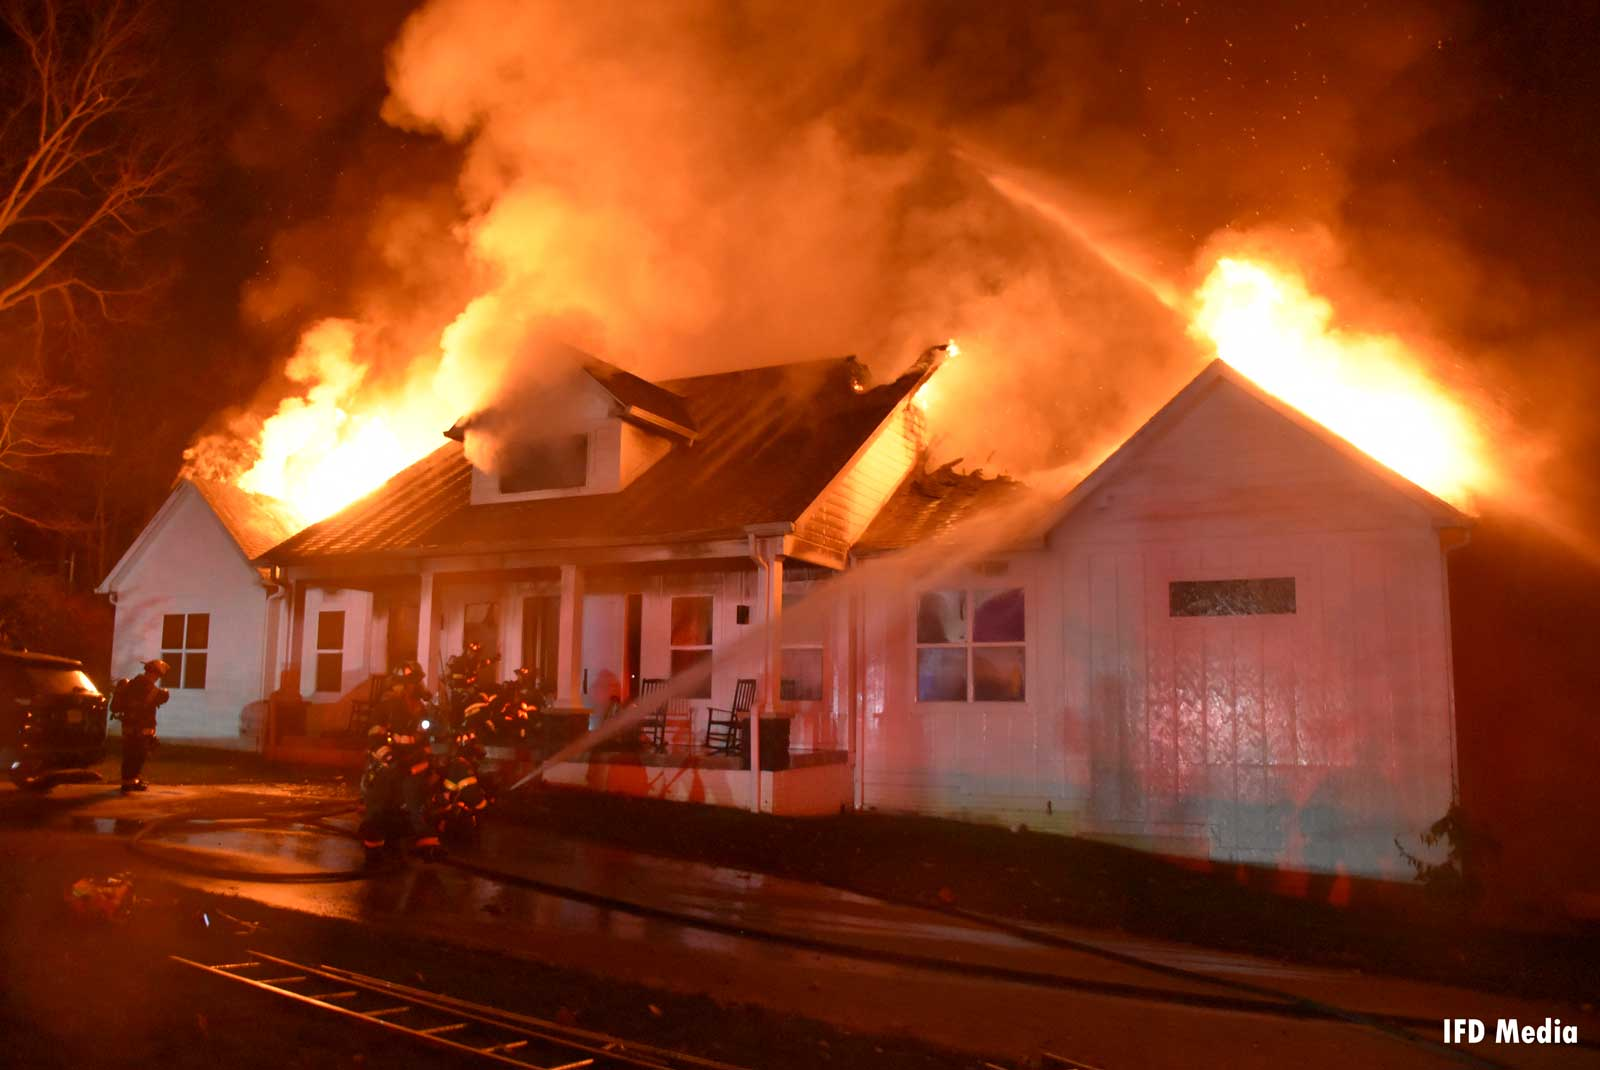 Firefighters put hoseline on the outside of a building